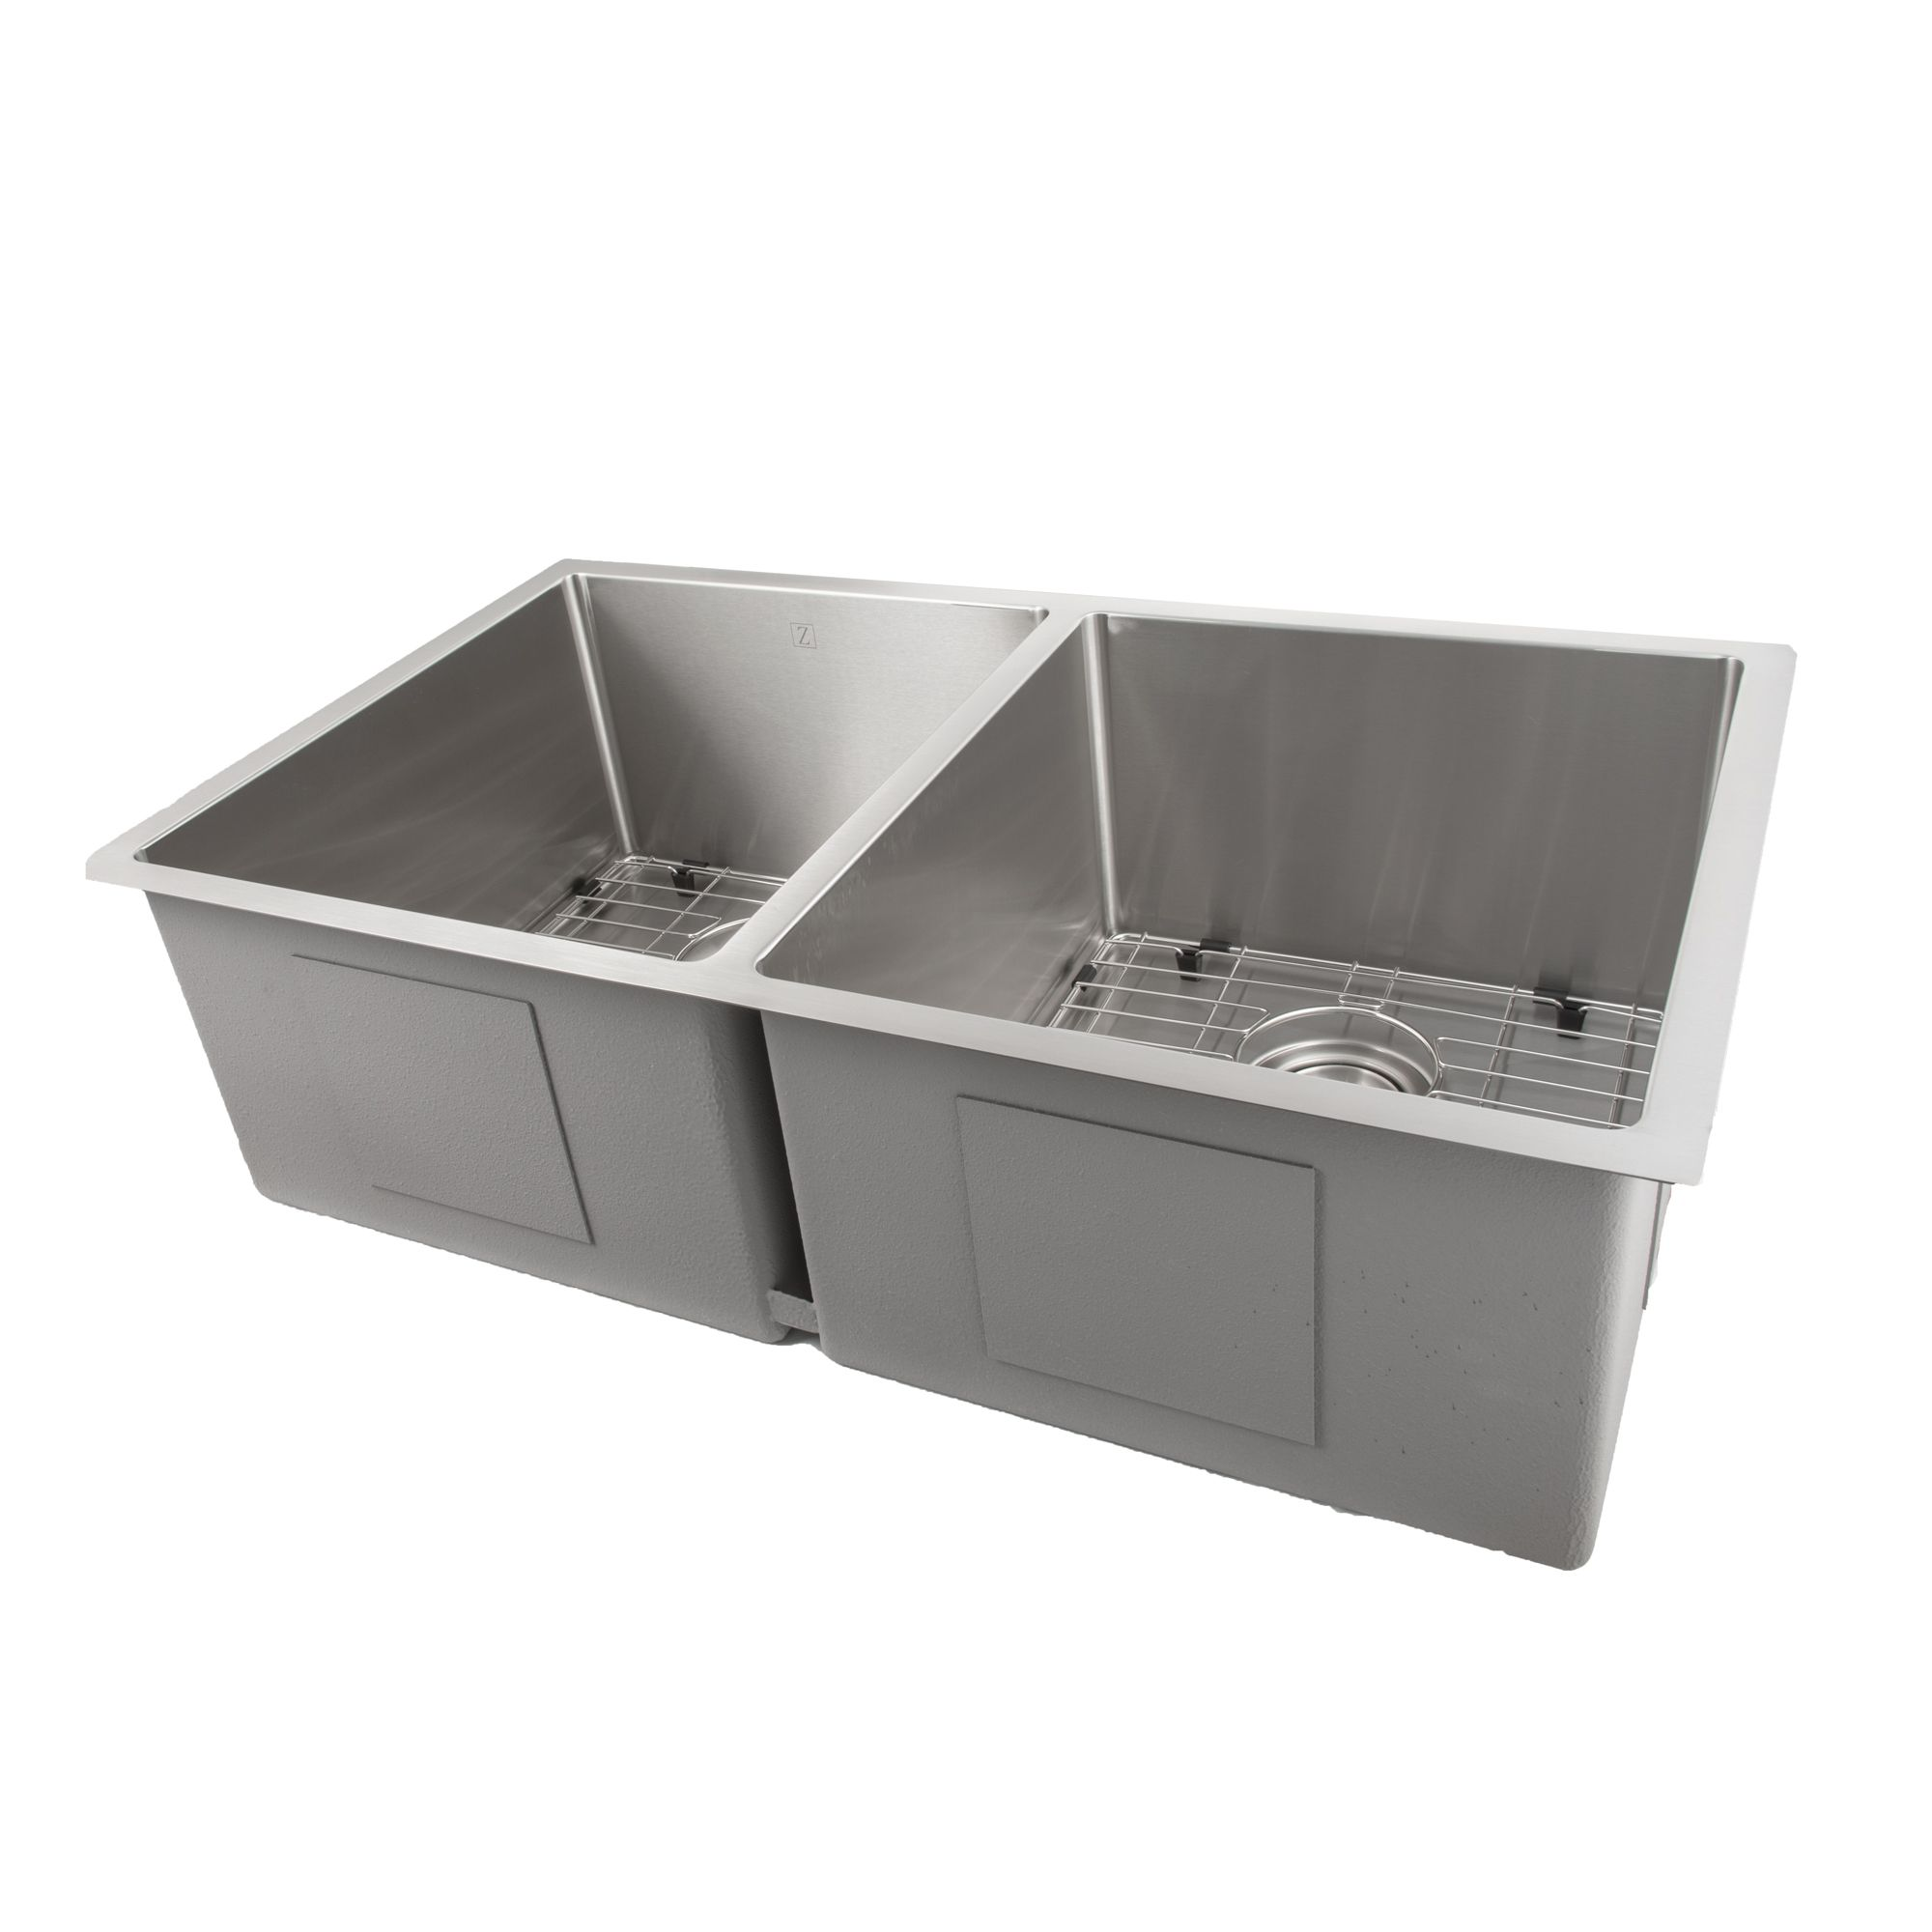 Zline Executive Series 33 Inch Undermount Double Bowl Sink In